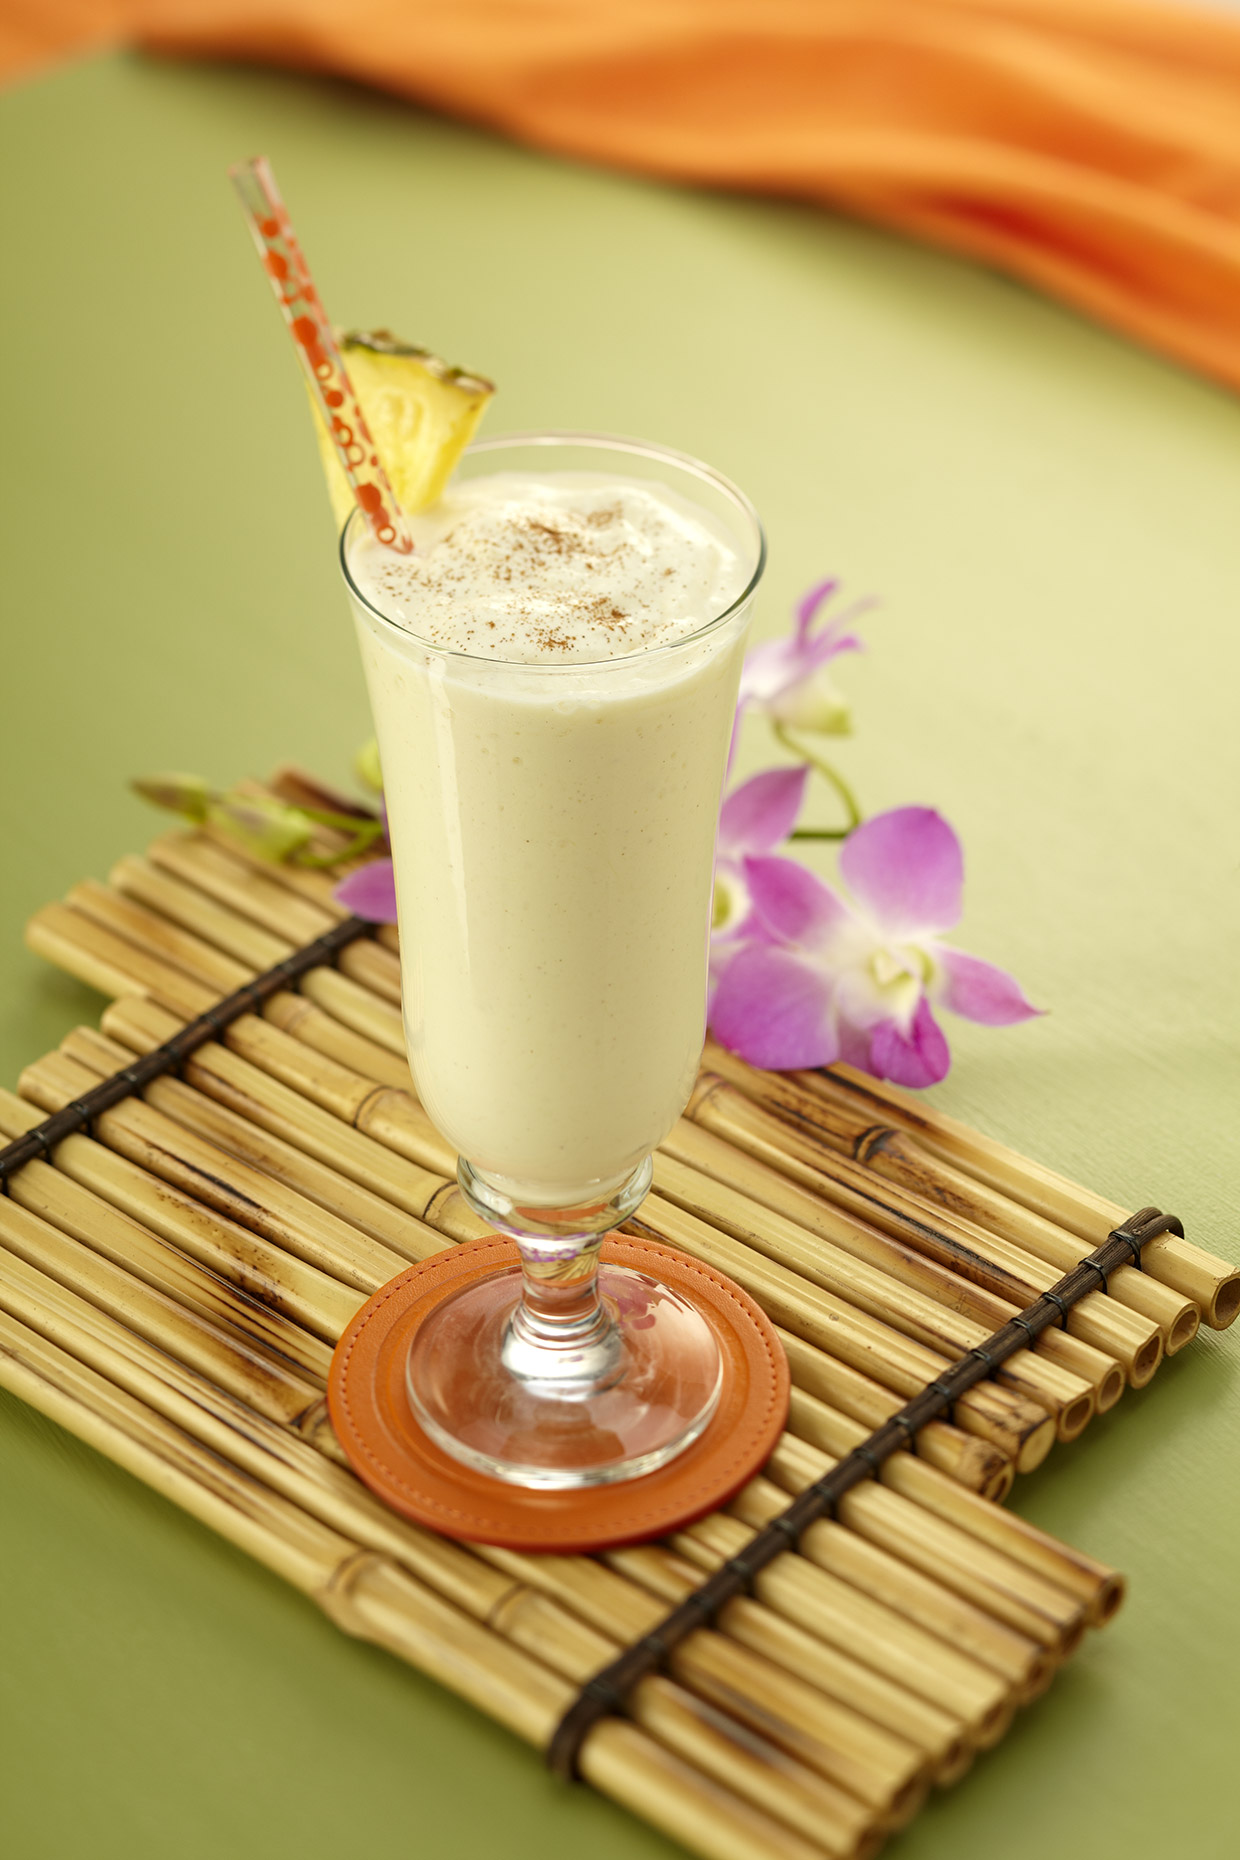 Creamy-Pineapple-Shake-No-Stem-00325